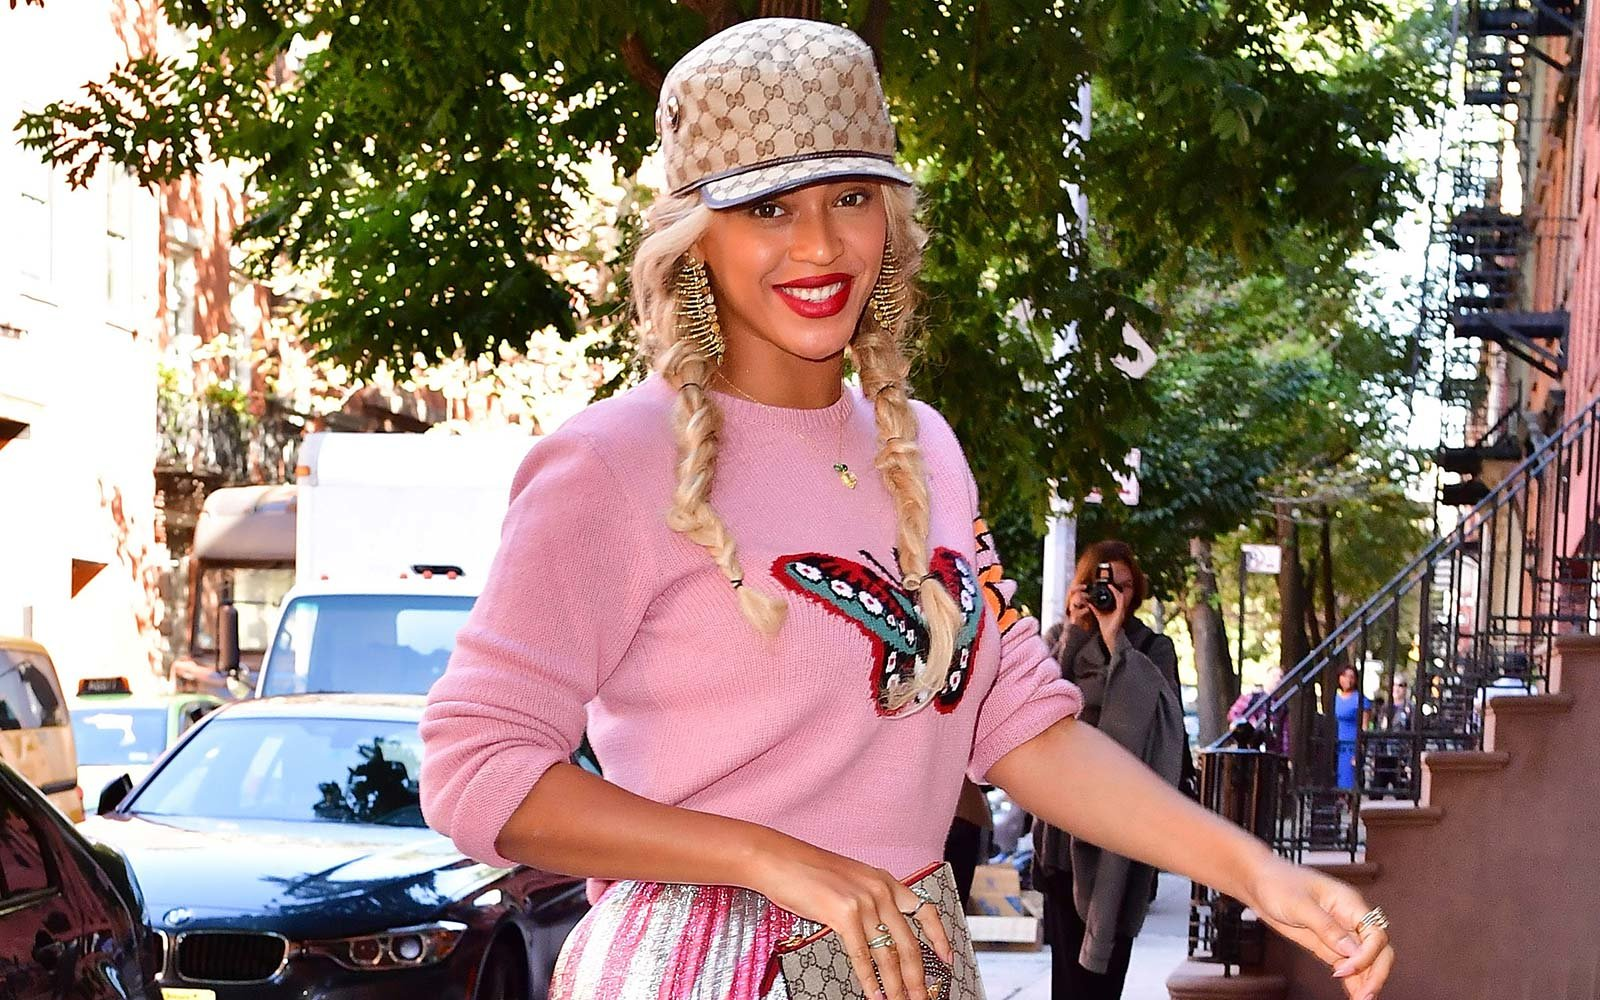 Beyoncé Designed the Travel Accessory Curly-haired Women Have Been ... 832e5b19cae